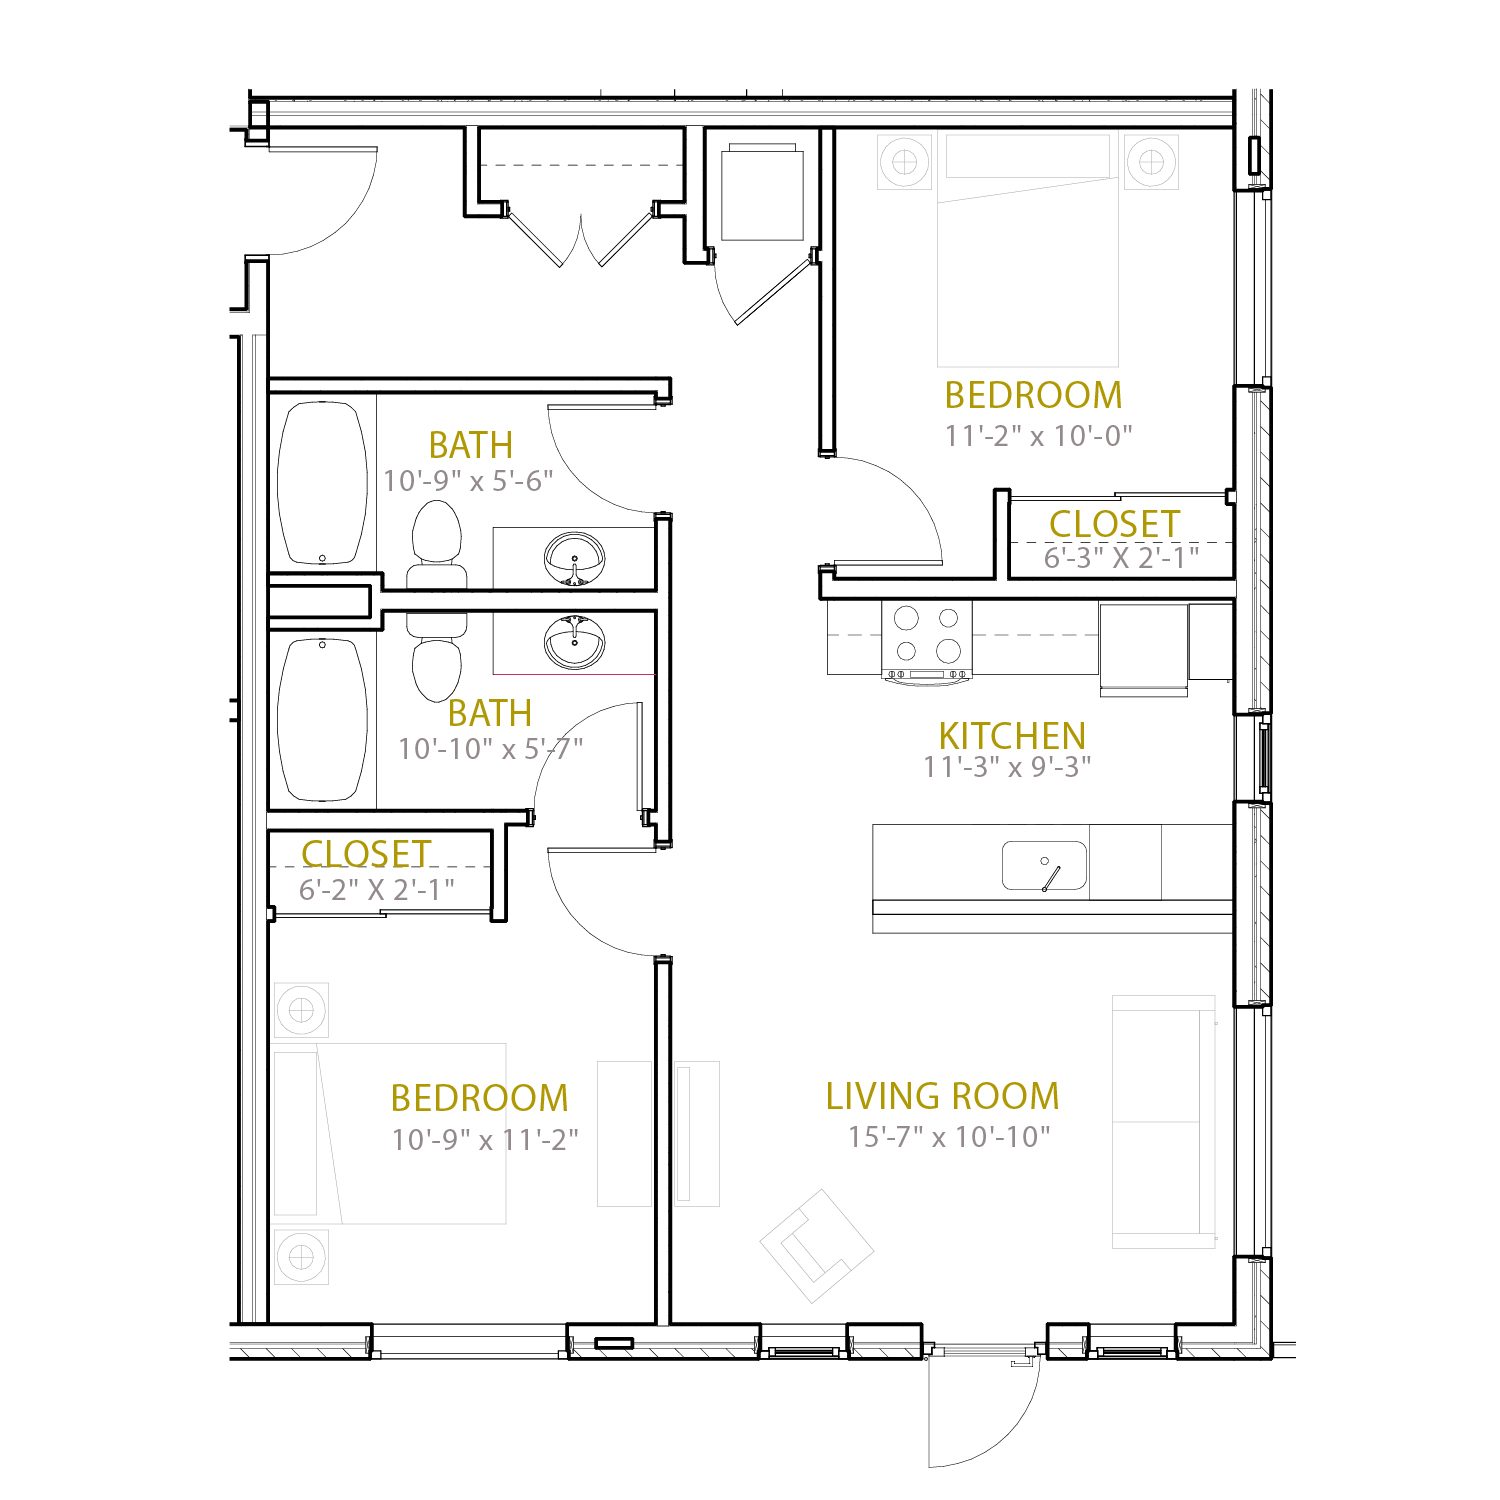 C Ten floor plan diagram. Two bedrooms, two bathrooms, and an open kitchen and living area.